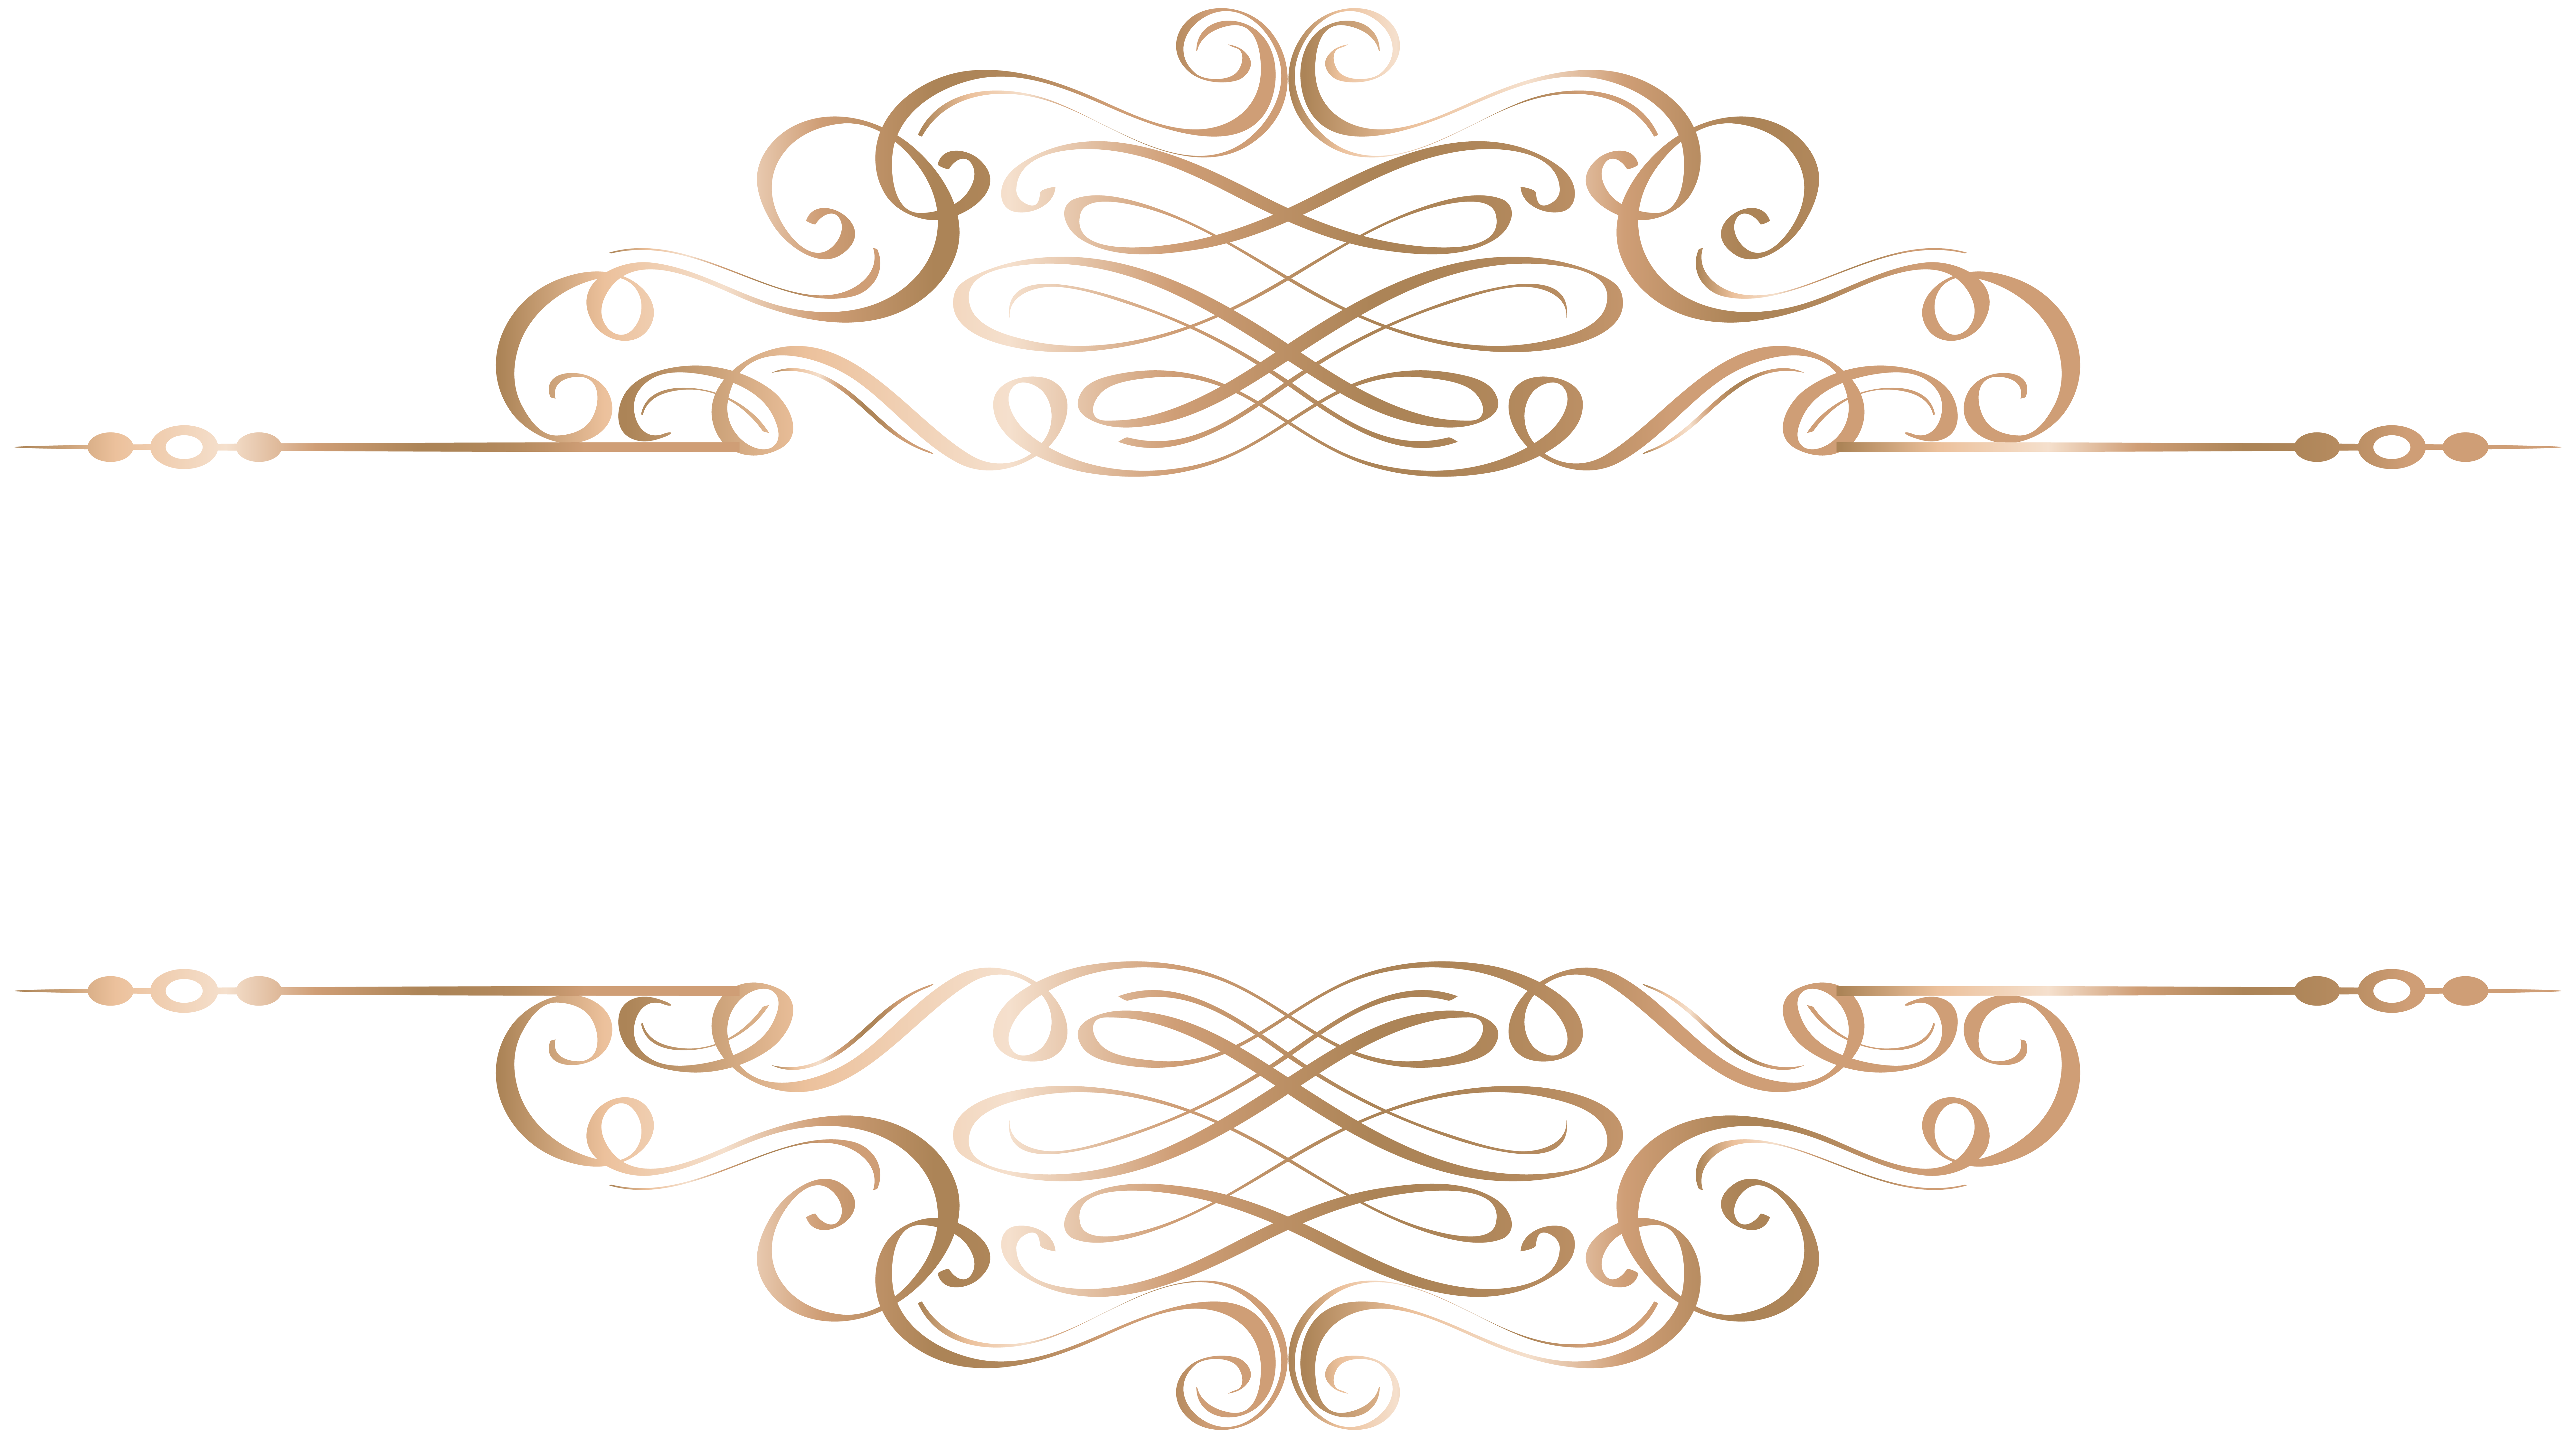 Decorative gold line png. Deco element clip art